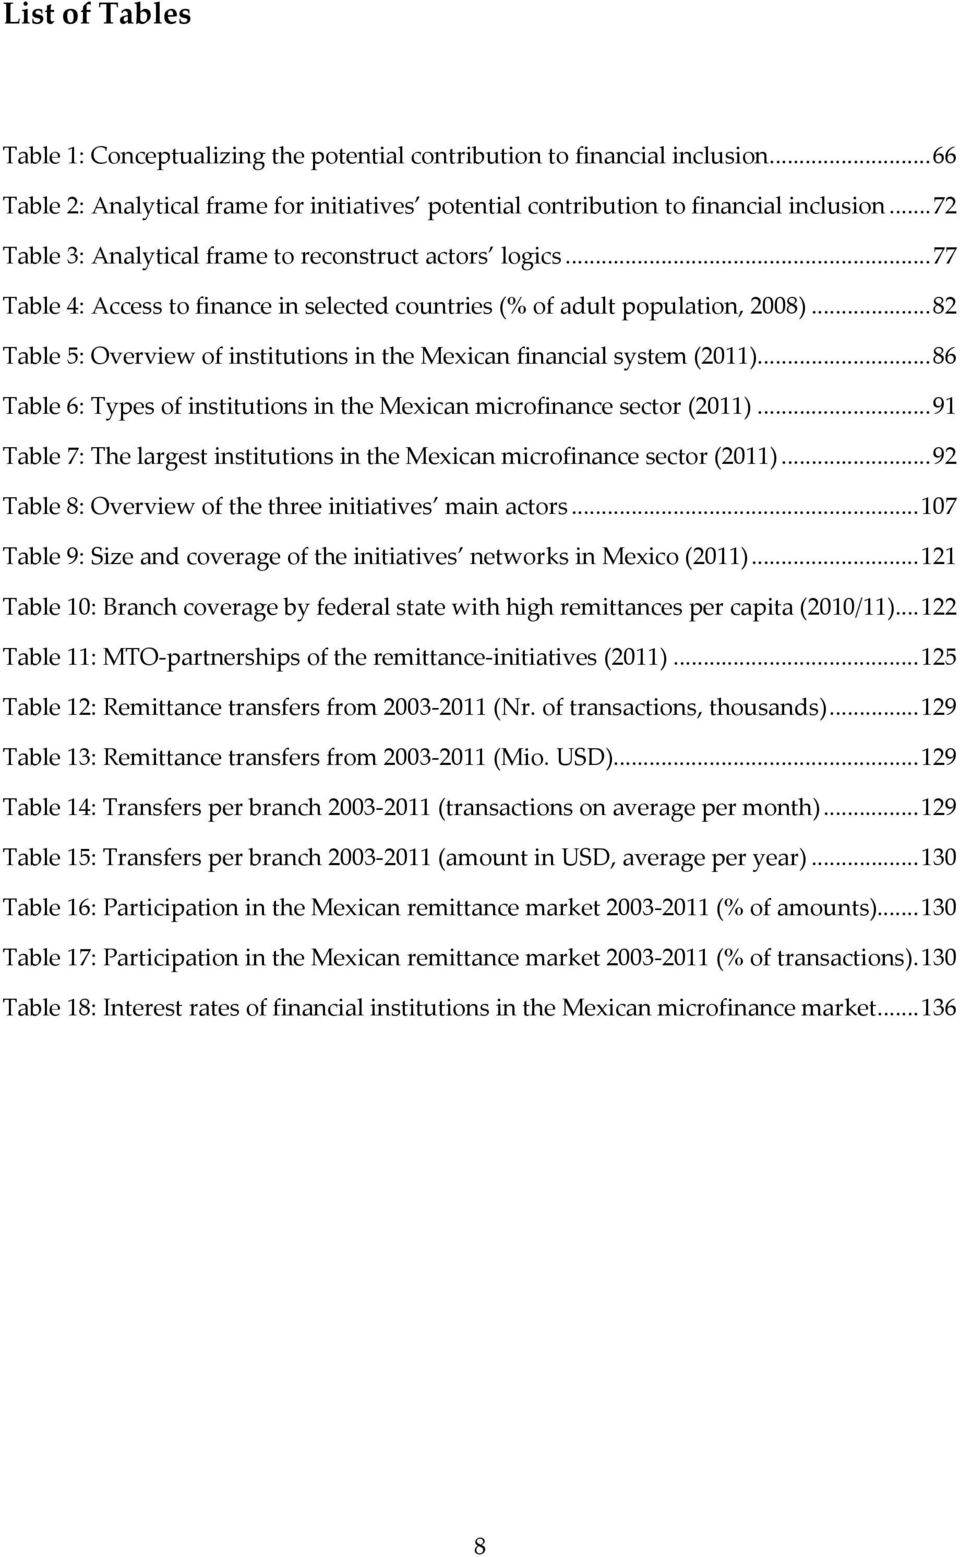 .. 82 Table 5: Overview of institutions in the Mexican financial system (2011)... 86 Table 6: Types of institutions in the Mexican microfinance sector (2011).